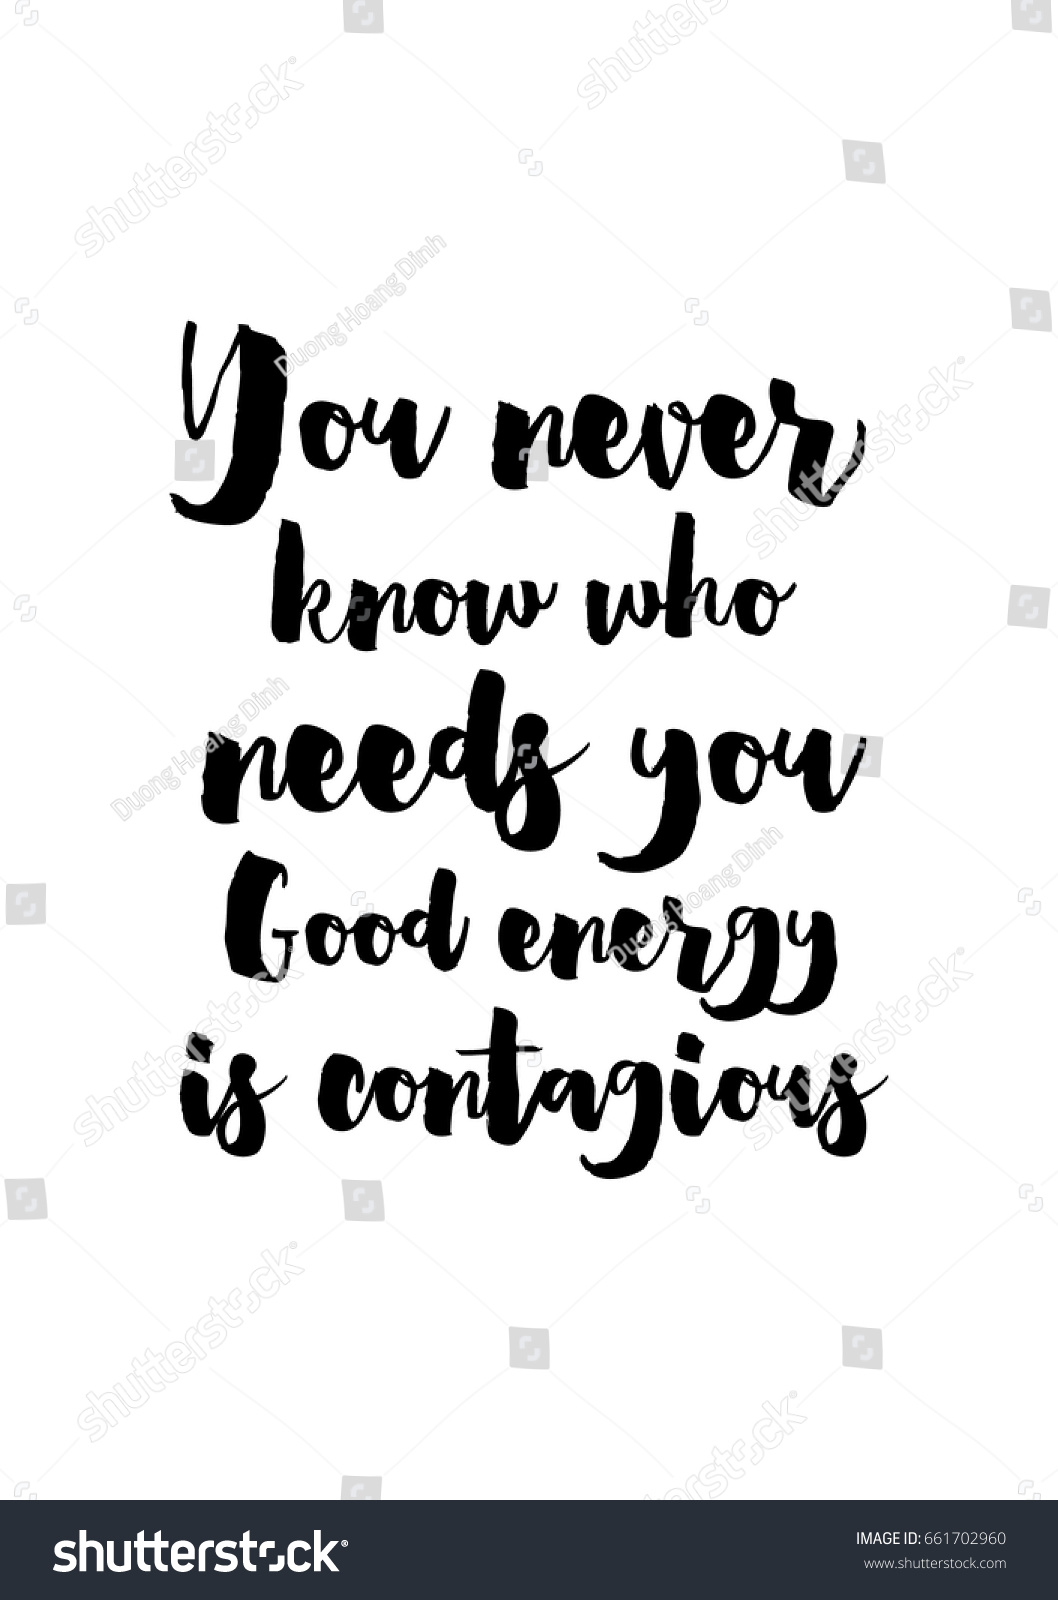 Good Energy Quotes Lettering Quotes Motivation About Life Quote Stock Vector